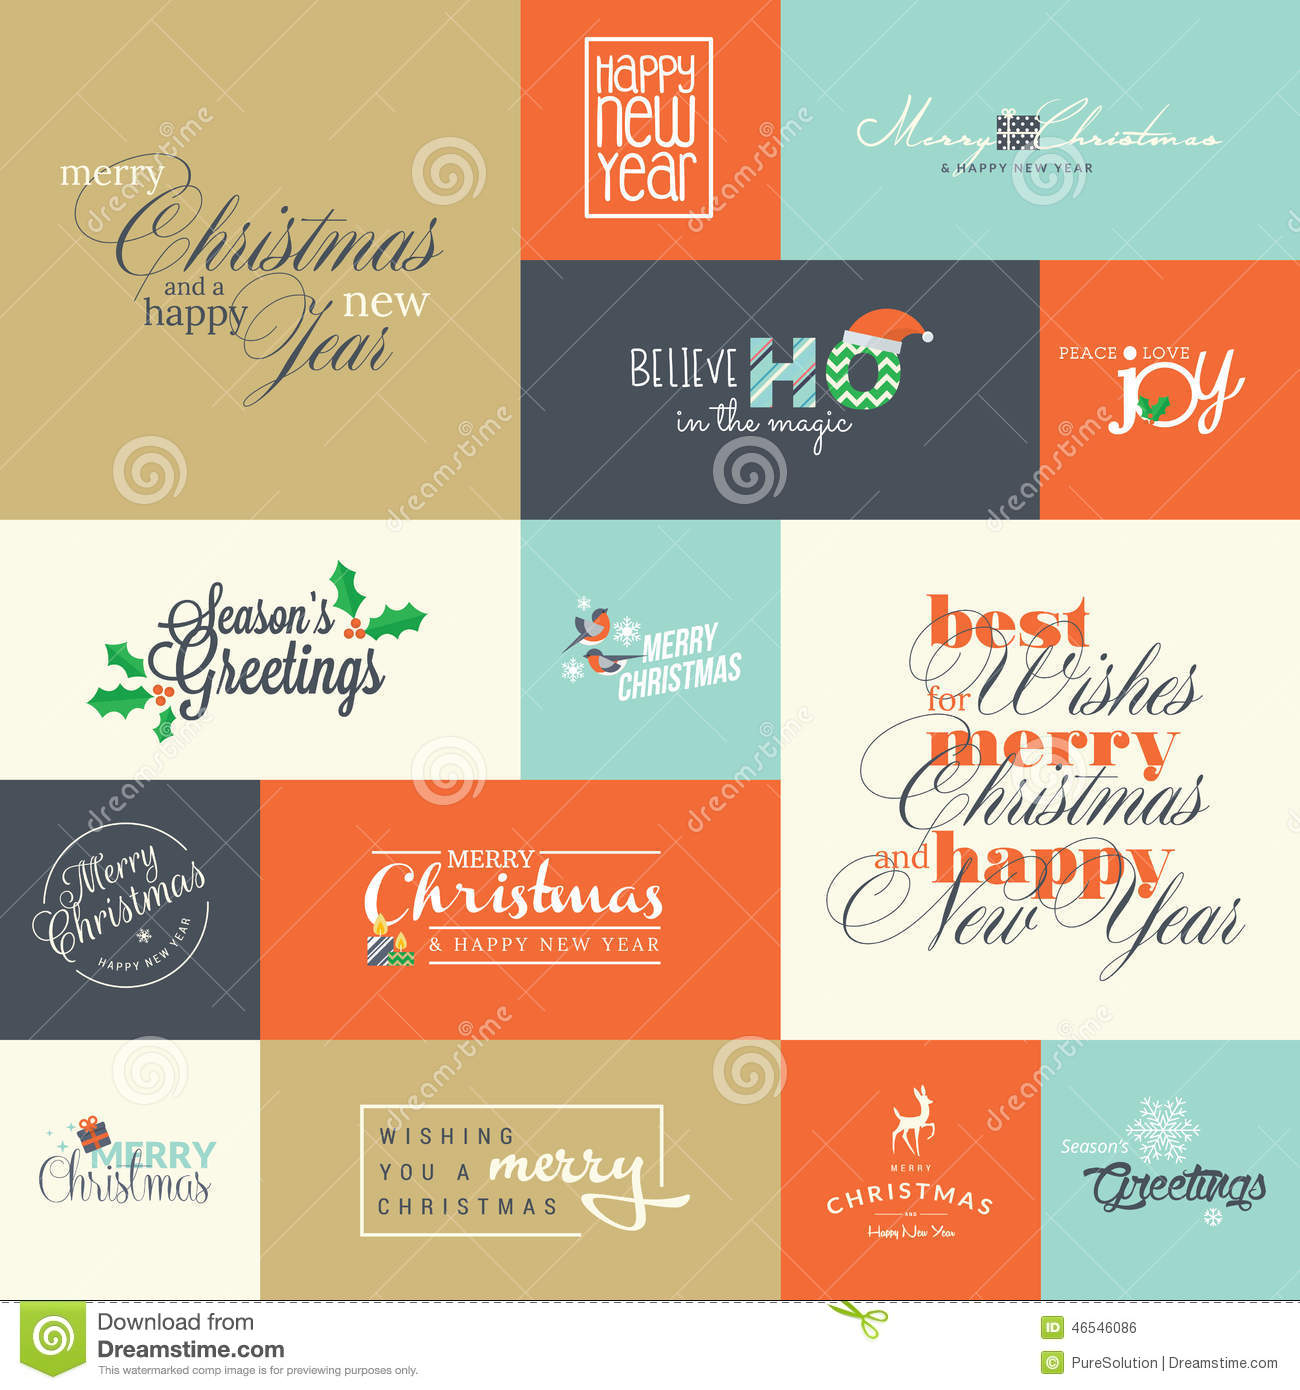 Set of flat design elements for christmas and new year greeting download set of flat design elements for christmas and new year greeting cards stock vector m4hsunfo